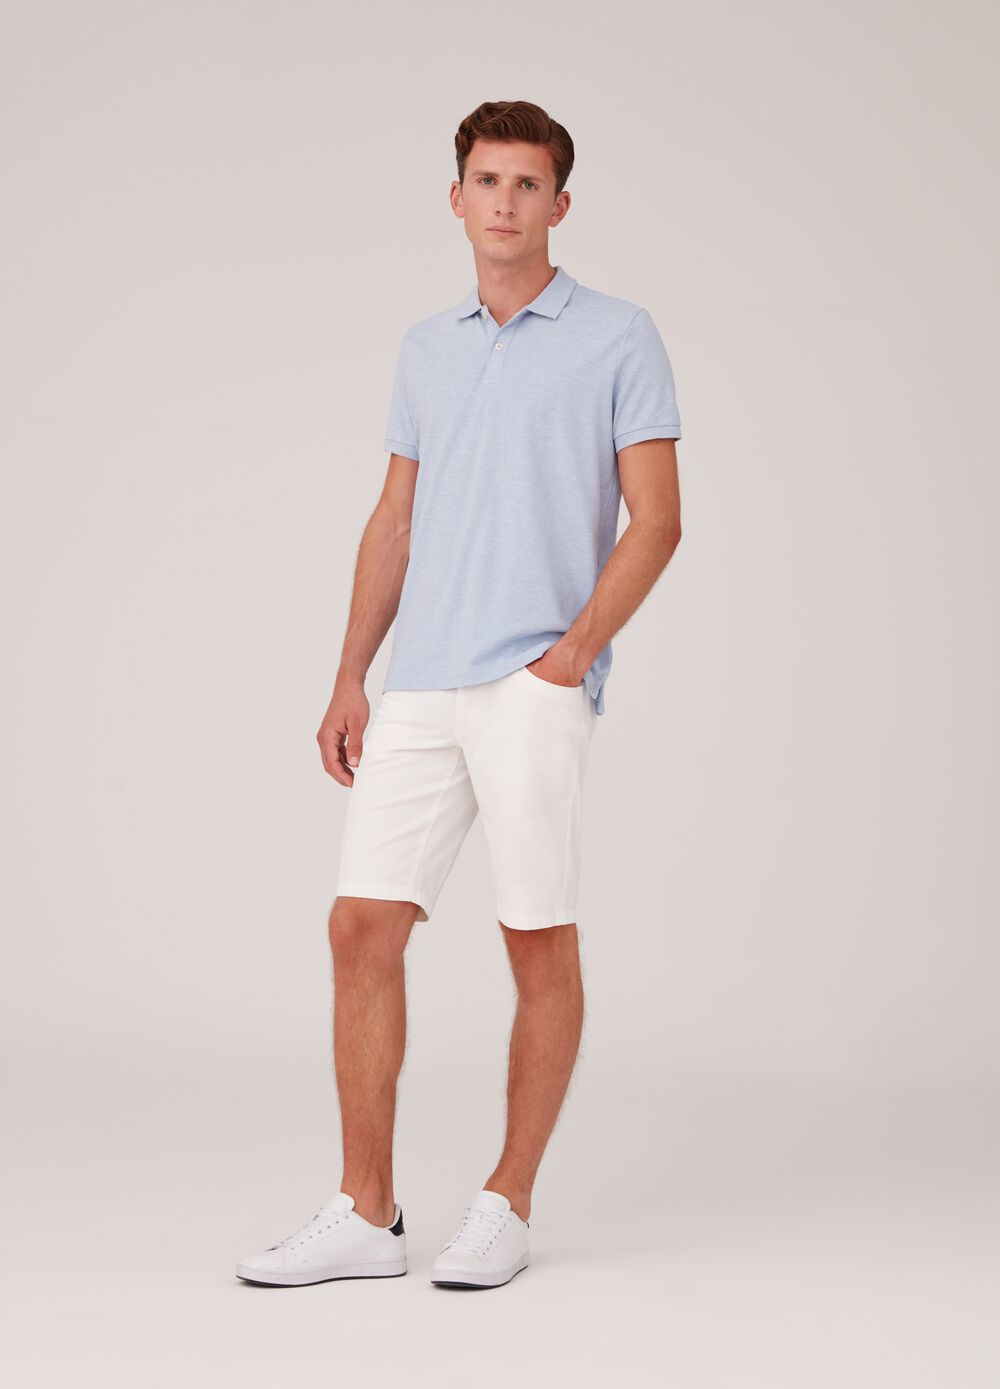 100% cotton shorts with pockets and zip